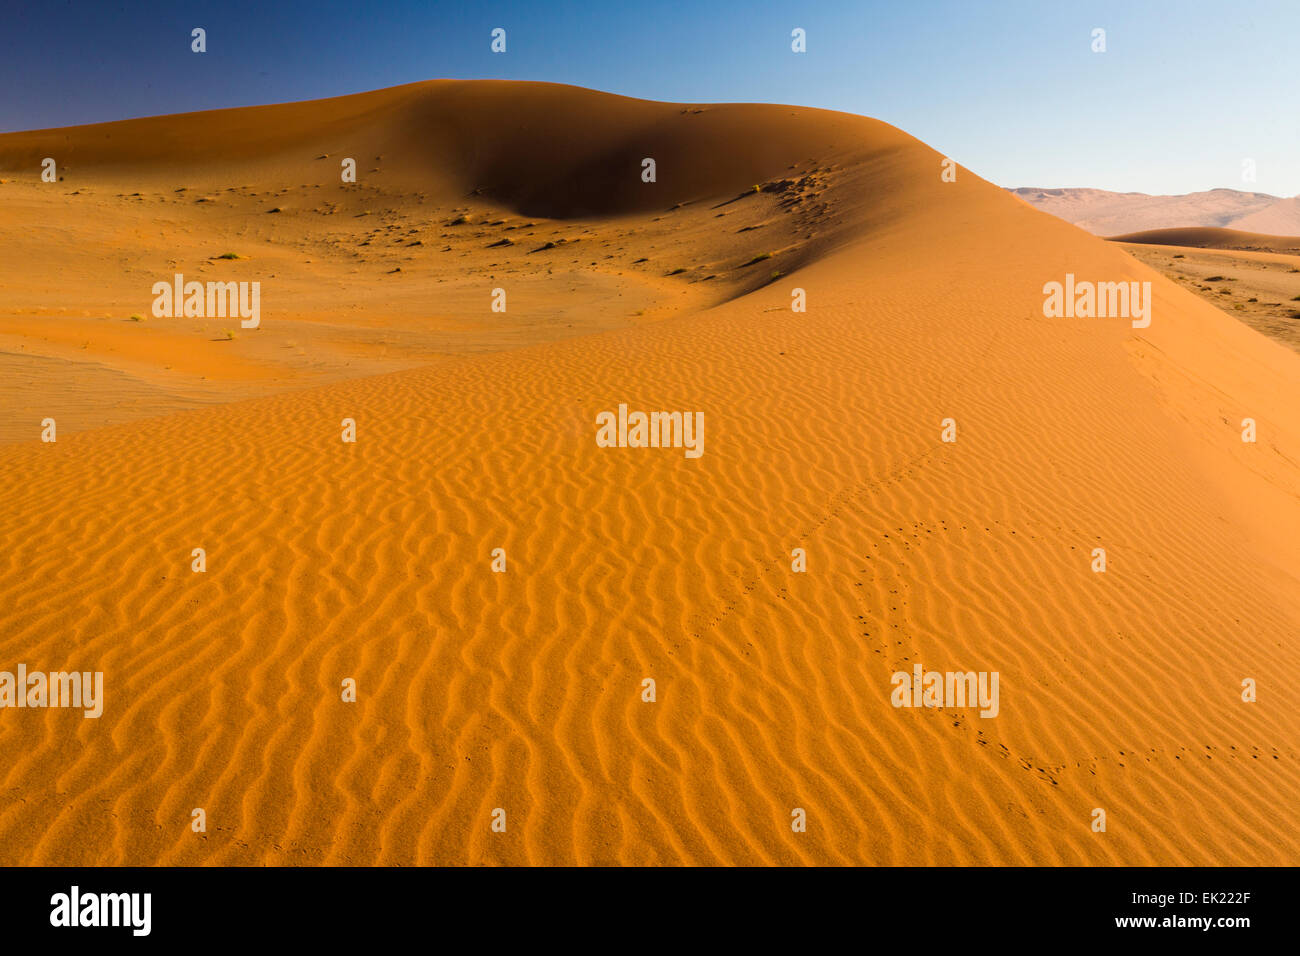 Sand dune in Namib desert near Sossusvlei in Namib-Naukluft National Park, Namibia - Stock Image